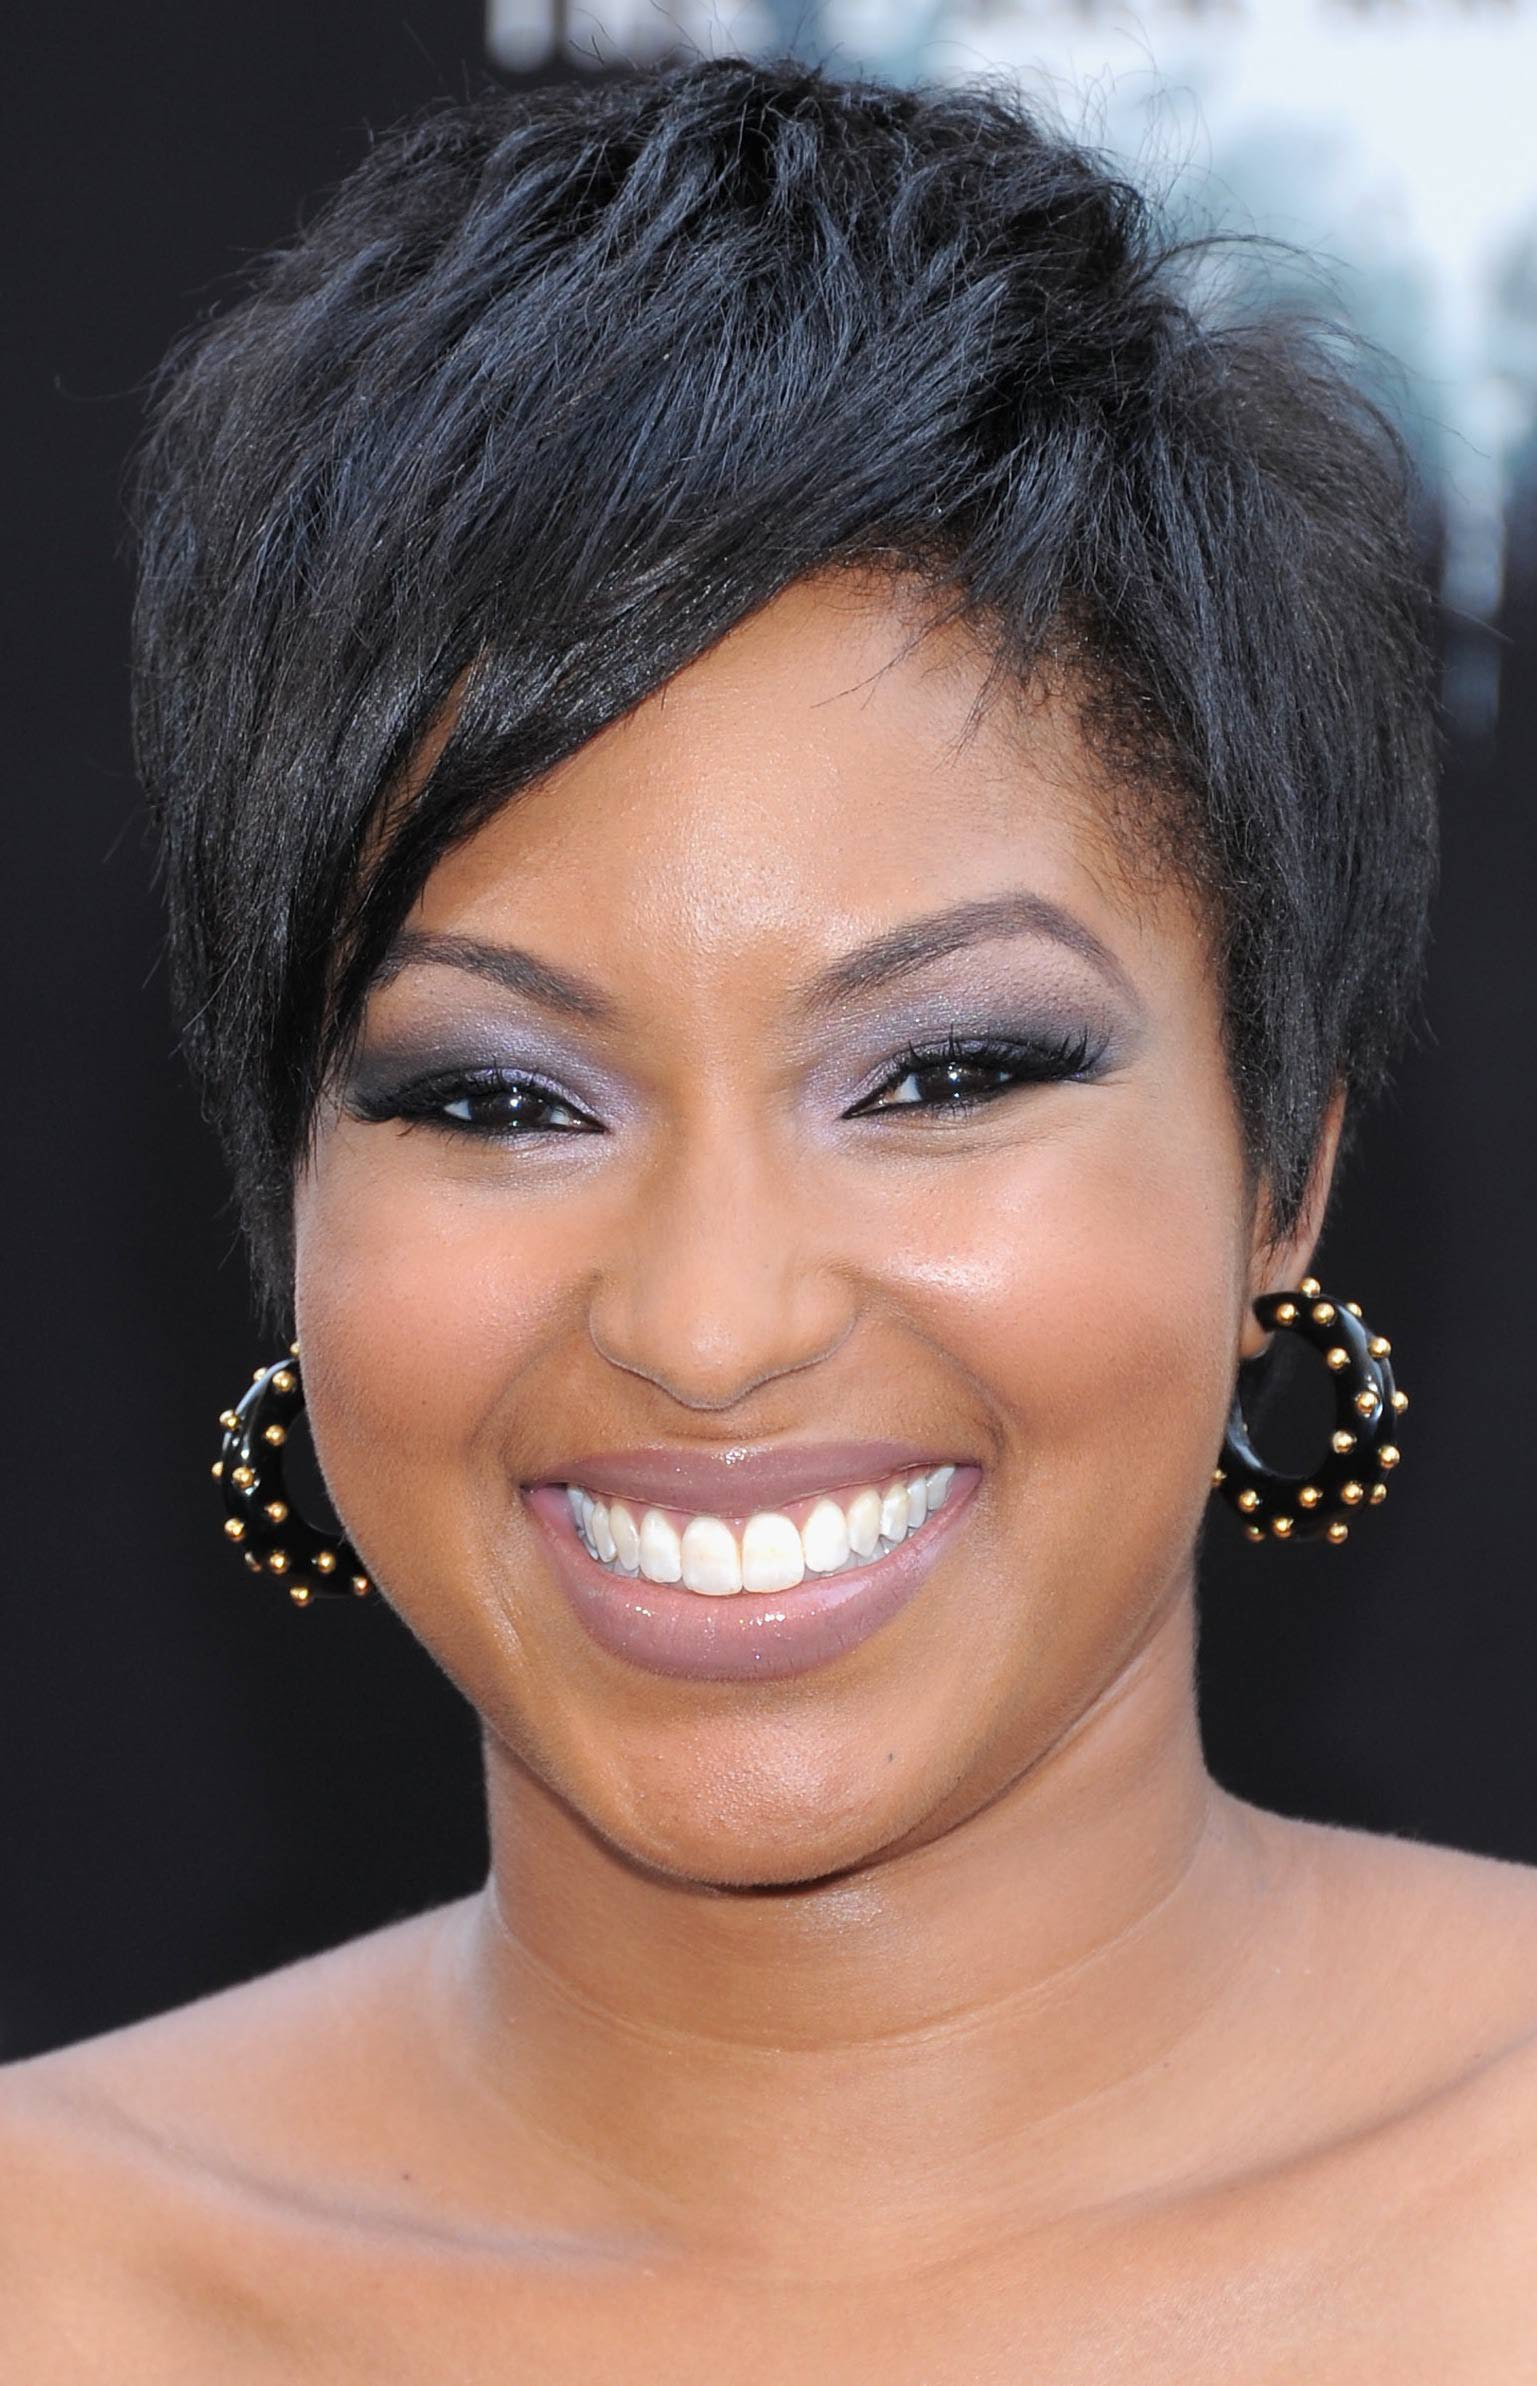 Top 10 Photo Of Pixie Hairstyles For Black Women